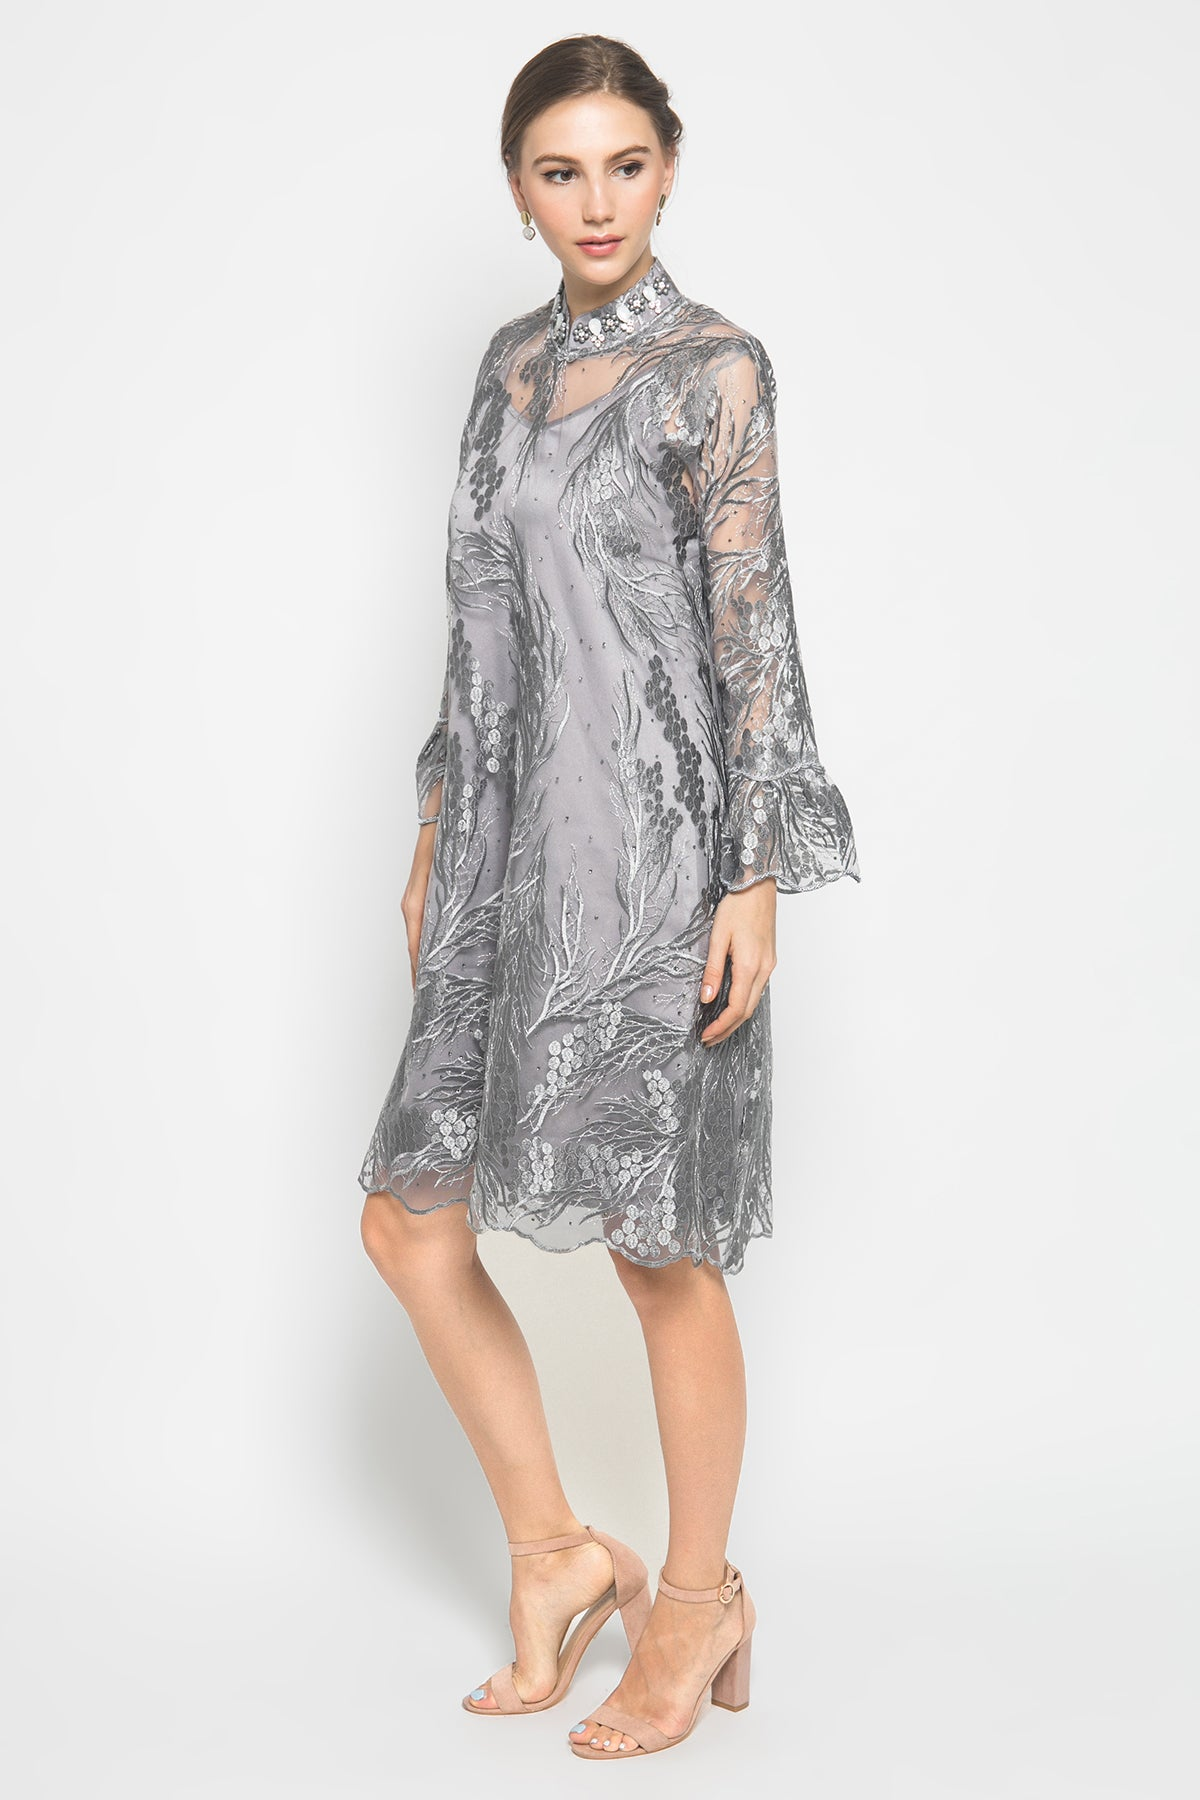 Fesya Grey Dress